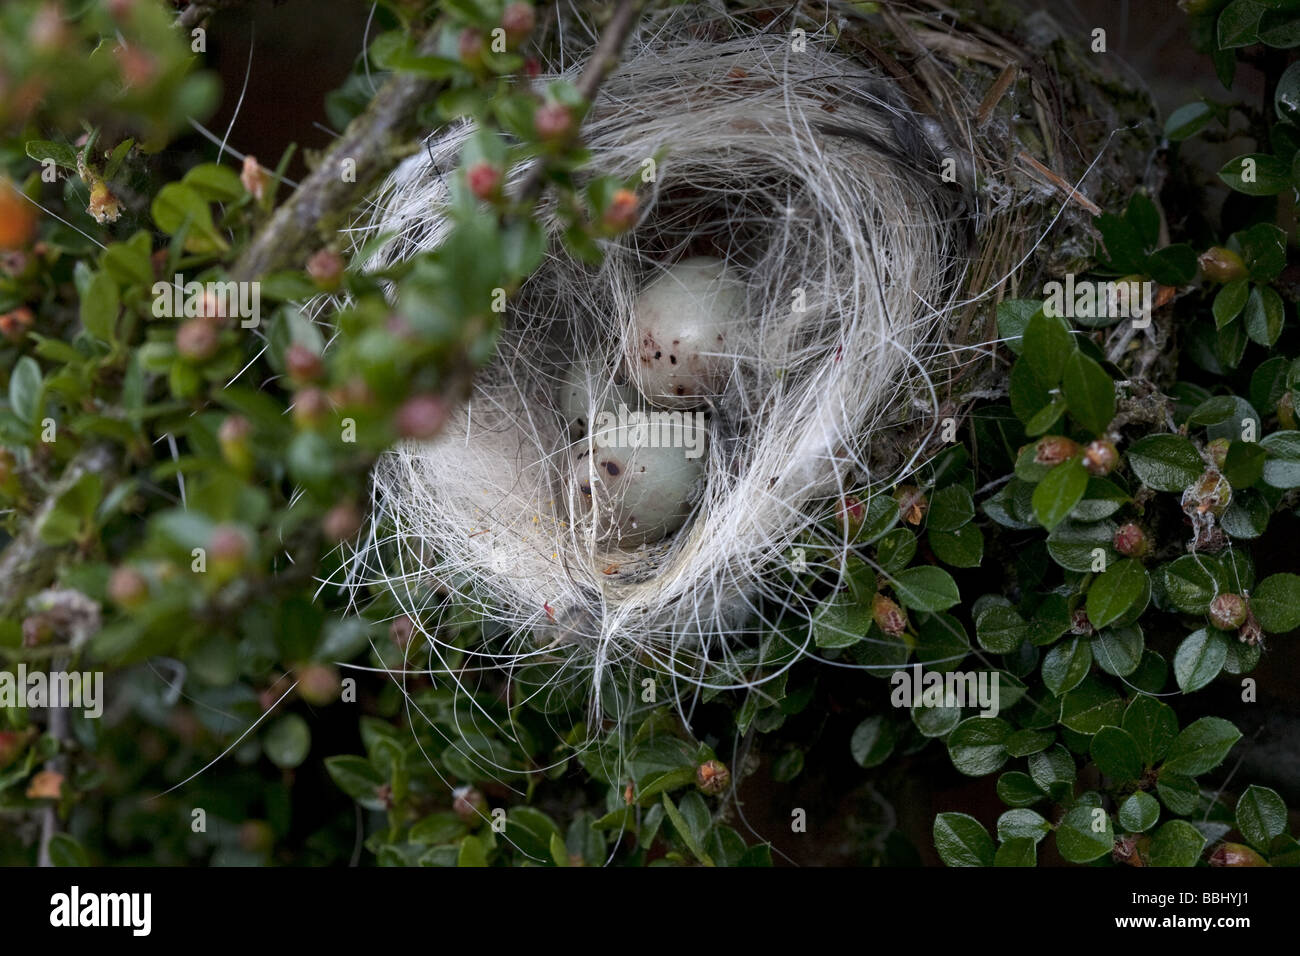 Damaged Chaffinches Nest and Eggs - Stock Image